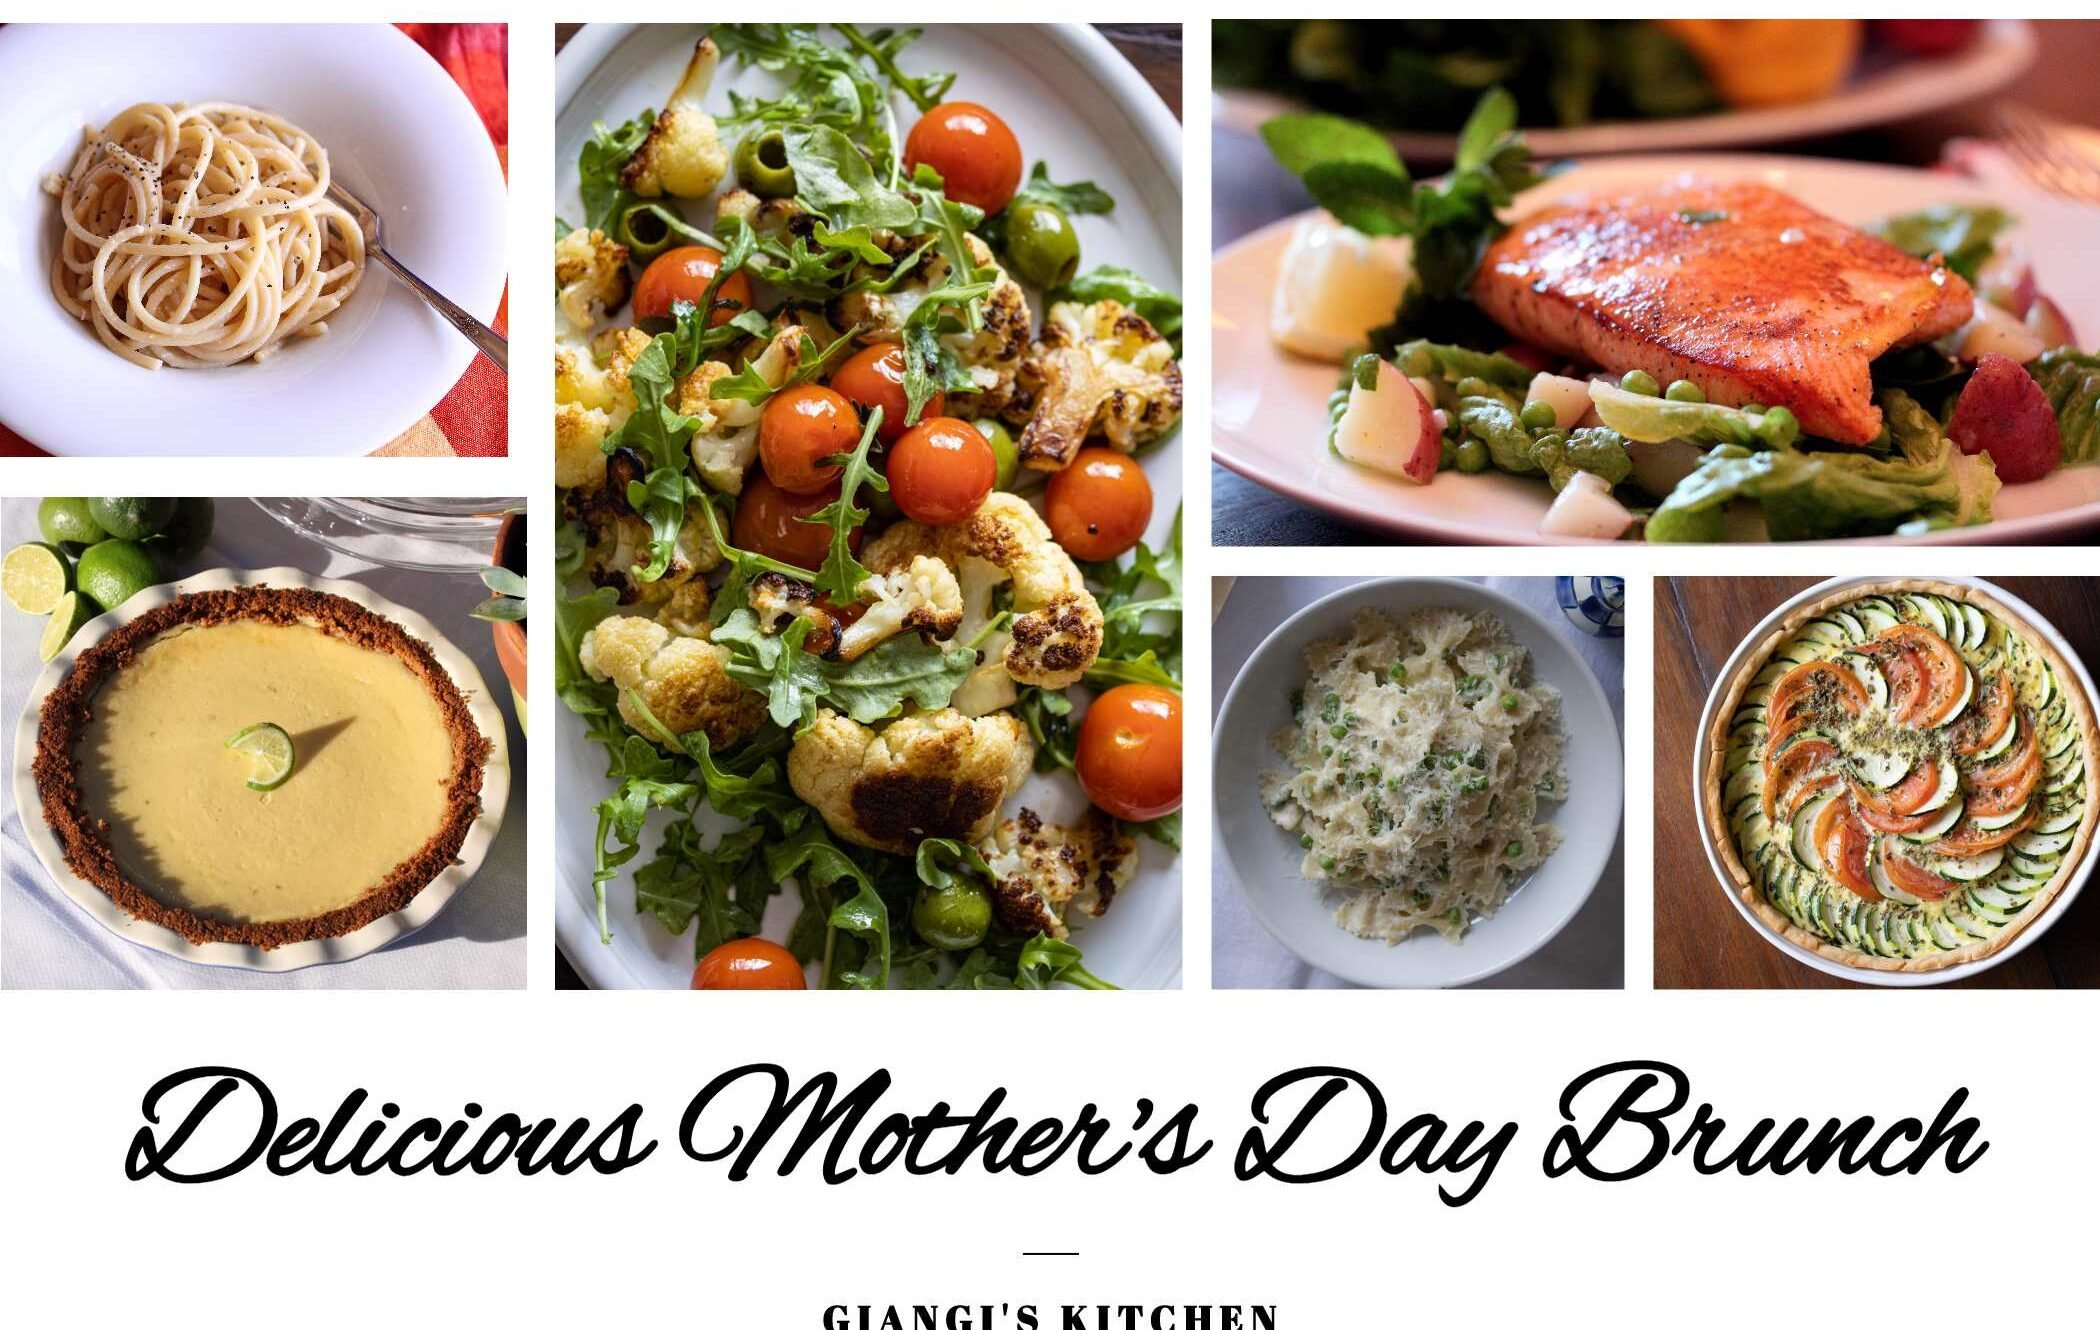 delicious mother's day brunch